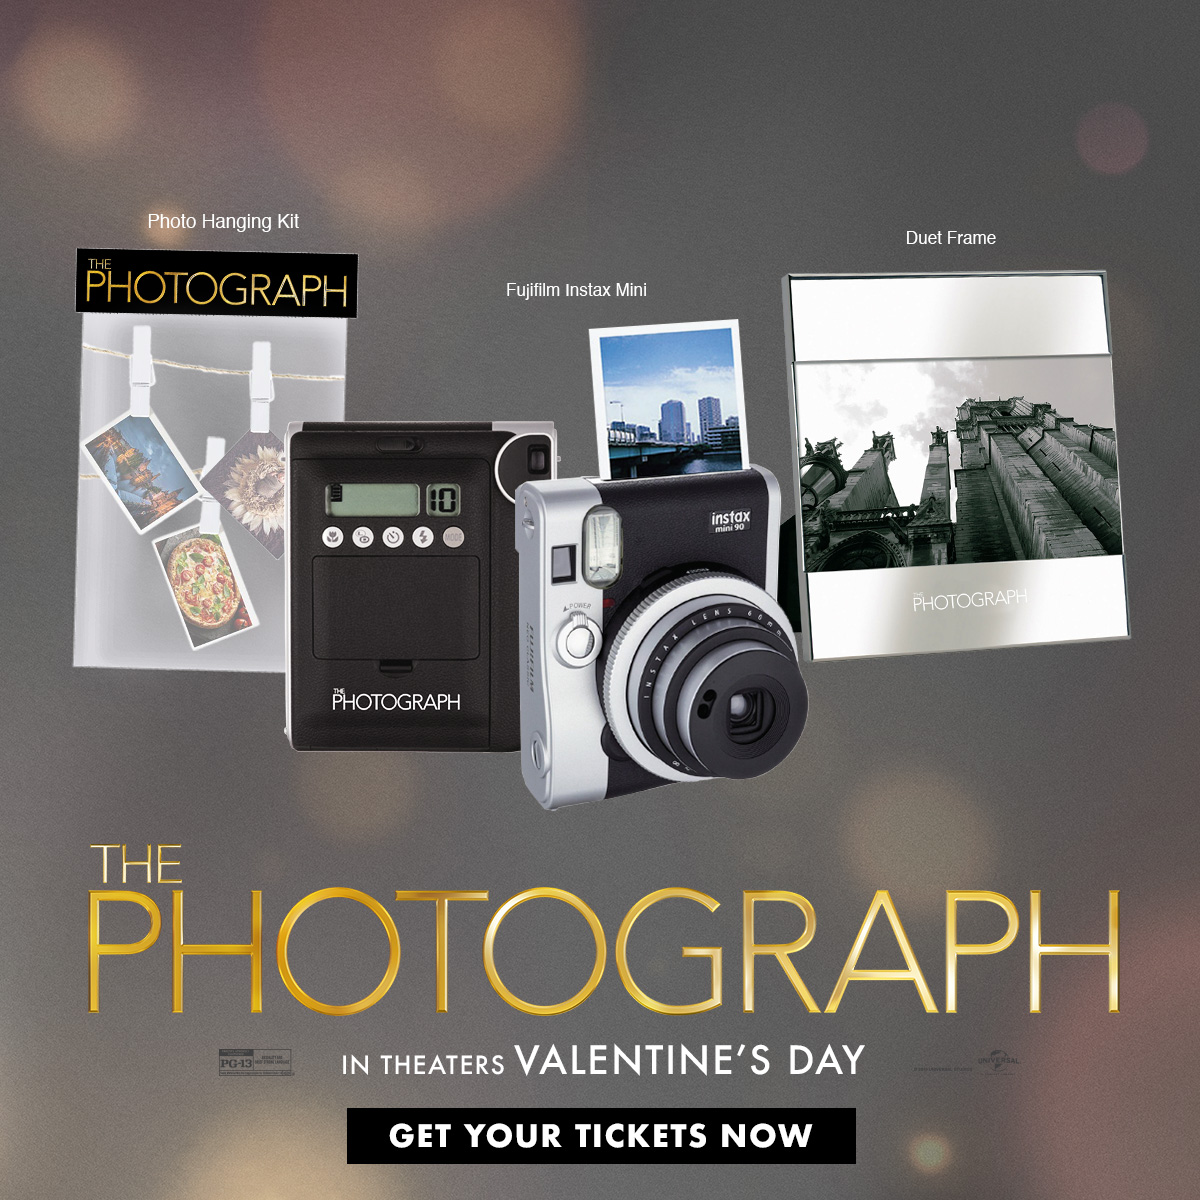 Follow us on Twitter, RT this post AND Tag someone who is not following us to be entered to win a @photographmovie prize pack courtesy of @universalpics.  🎟: https://bit.ly/2OJfkl0 #Contest Rules: https://bit.ly/2JsUiTI #MakeItICONIC #thephotographmovie #chicago